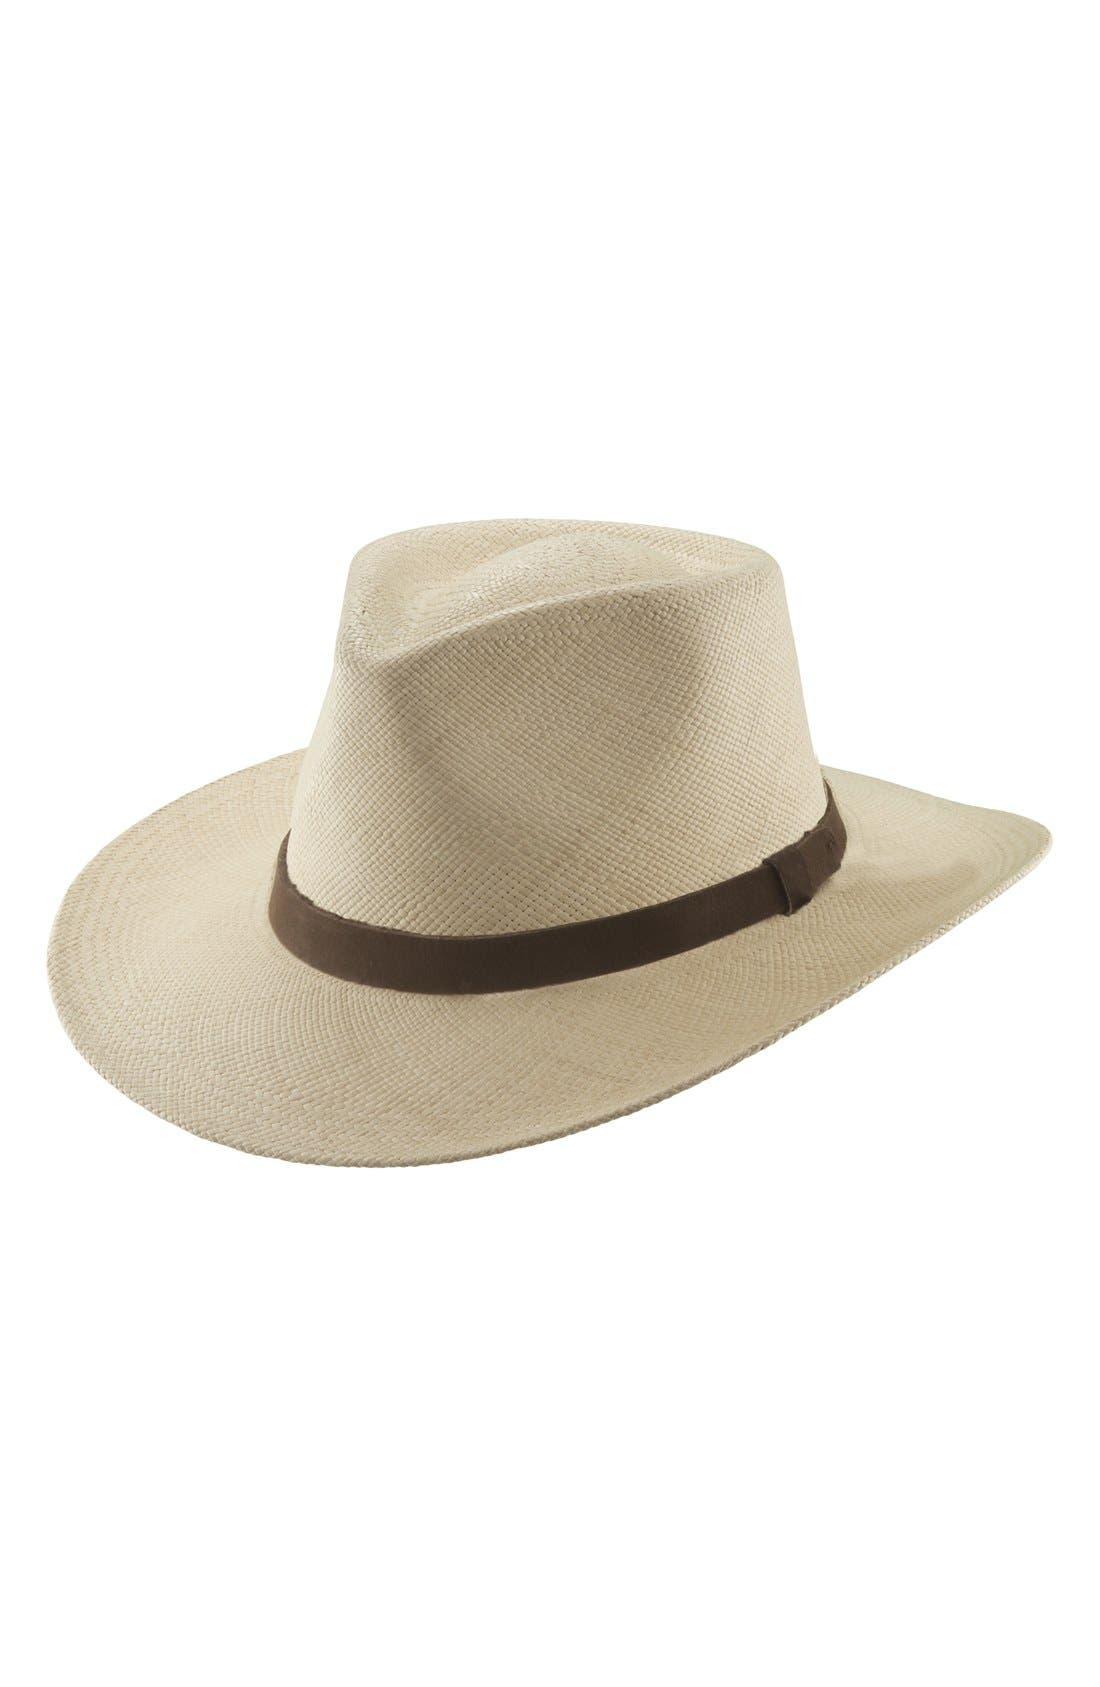 Main Image - Scala Straw Outback Hat